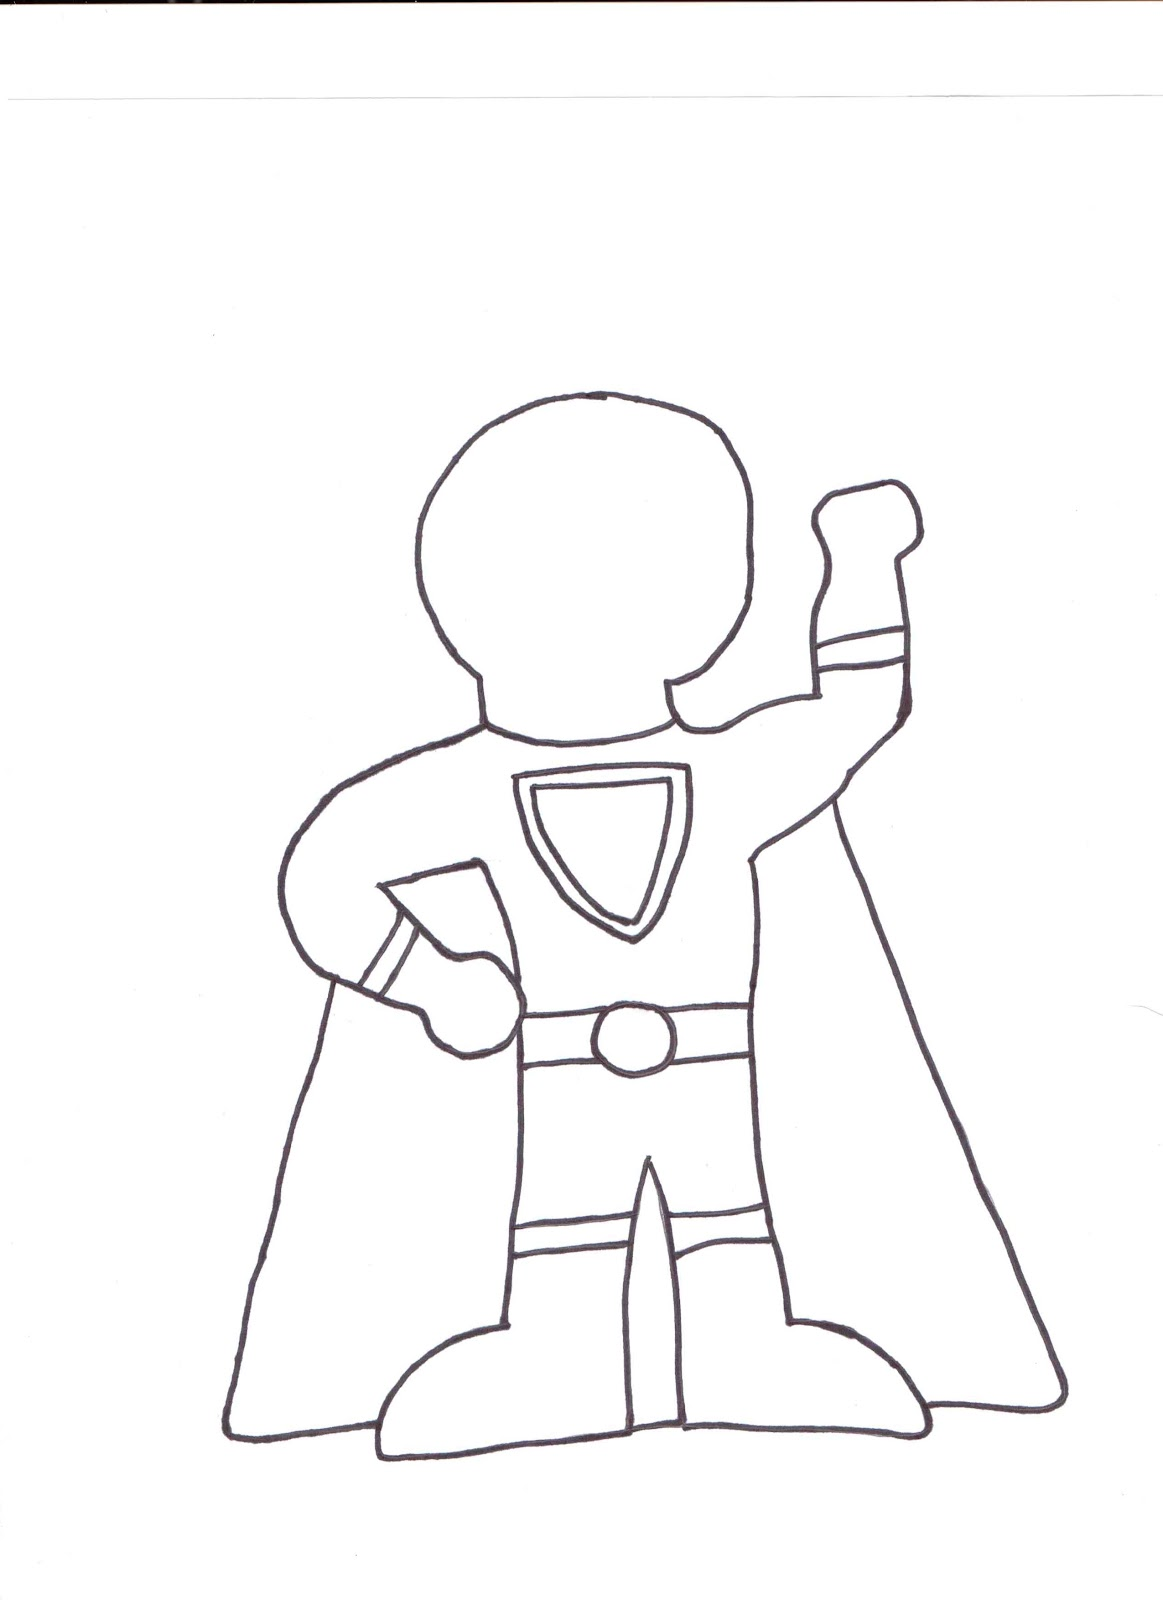 Superhero outline clipart svg library Superhero black and white superhero clipart black and white ... svg library